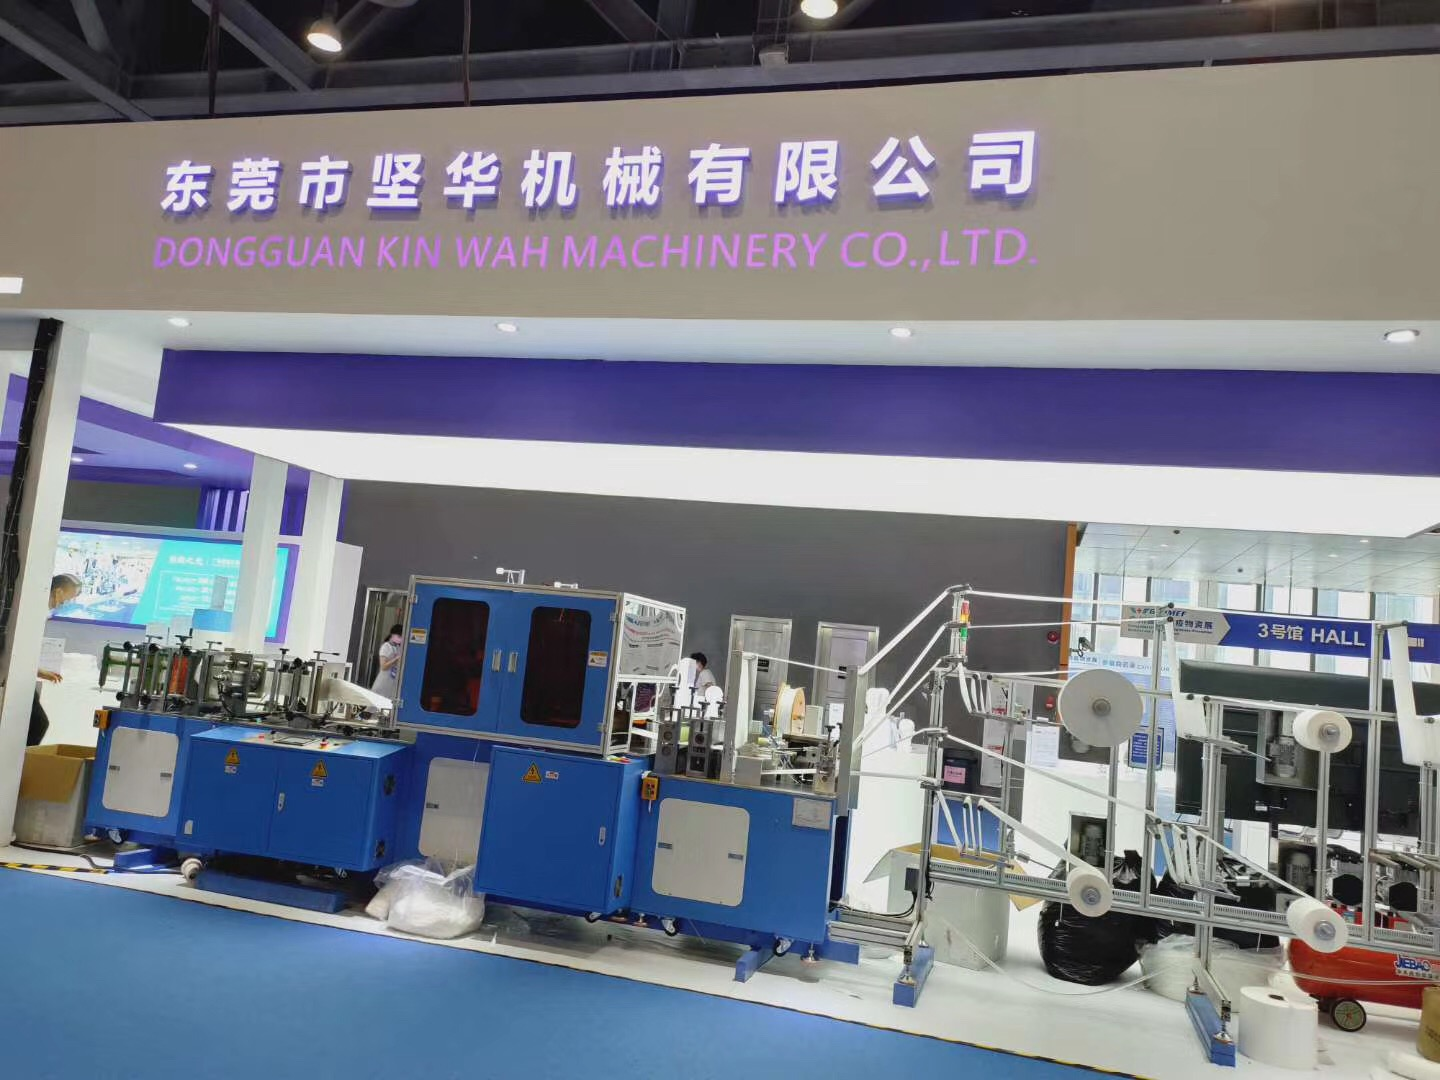 THE INTERNATIONAL EPIDEMIC PREVENTION MATERIALS EXHIBITION ON GUANGZHOU